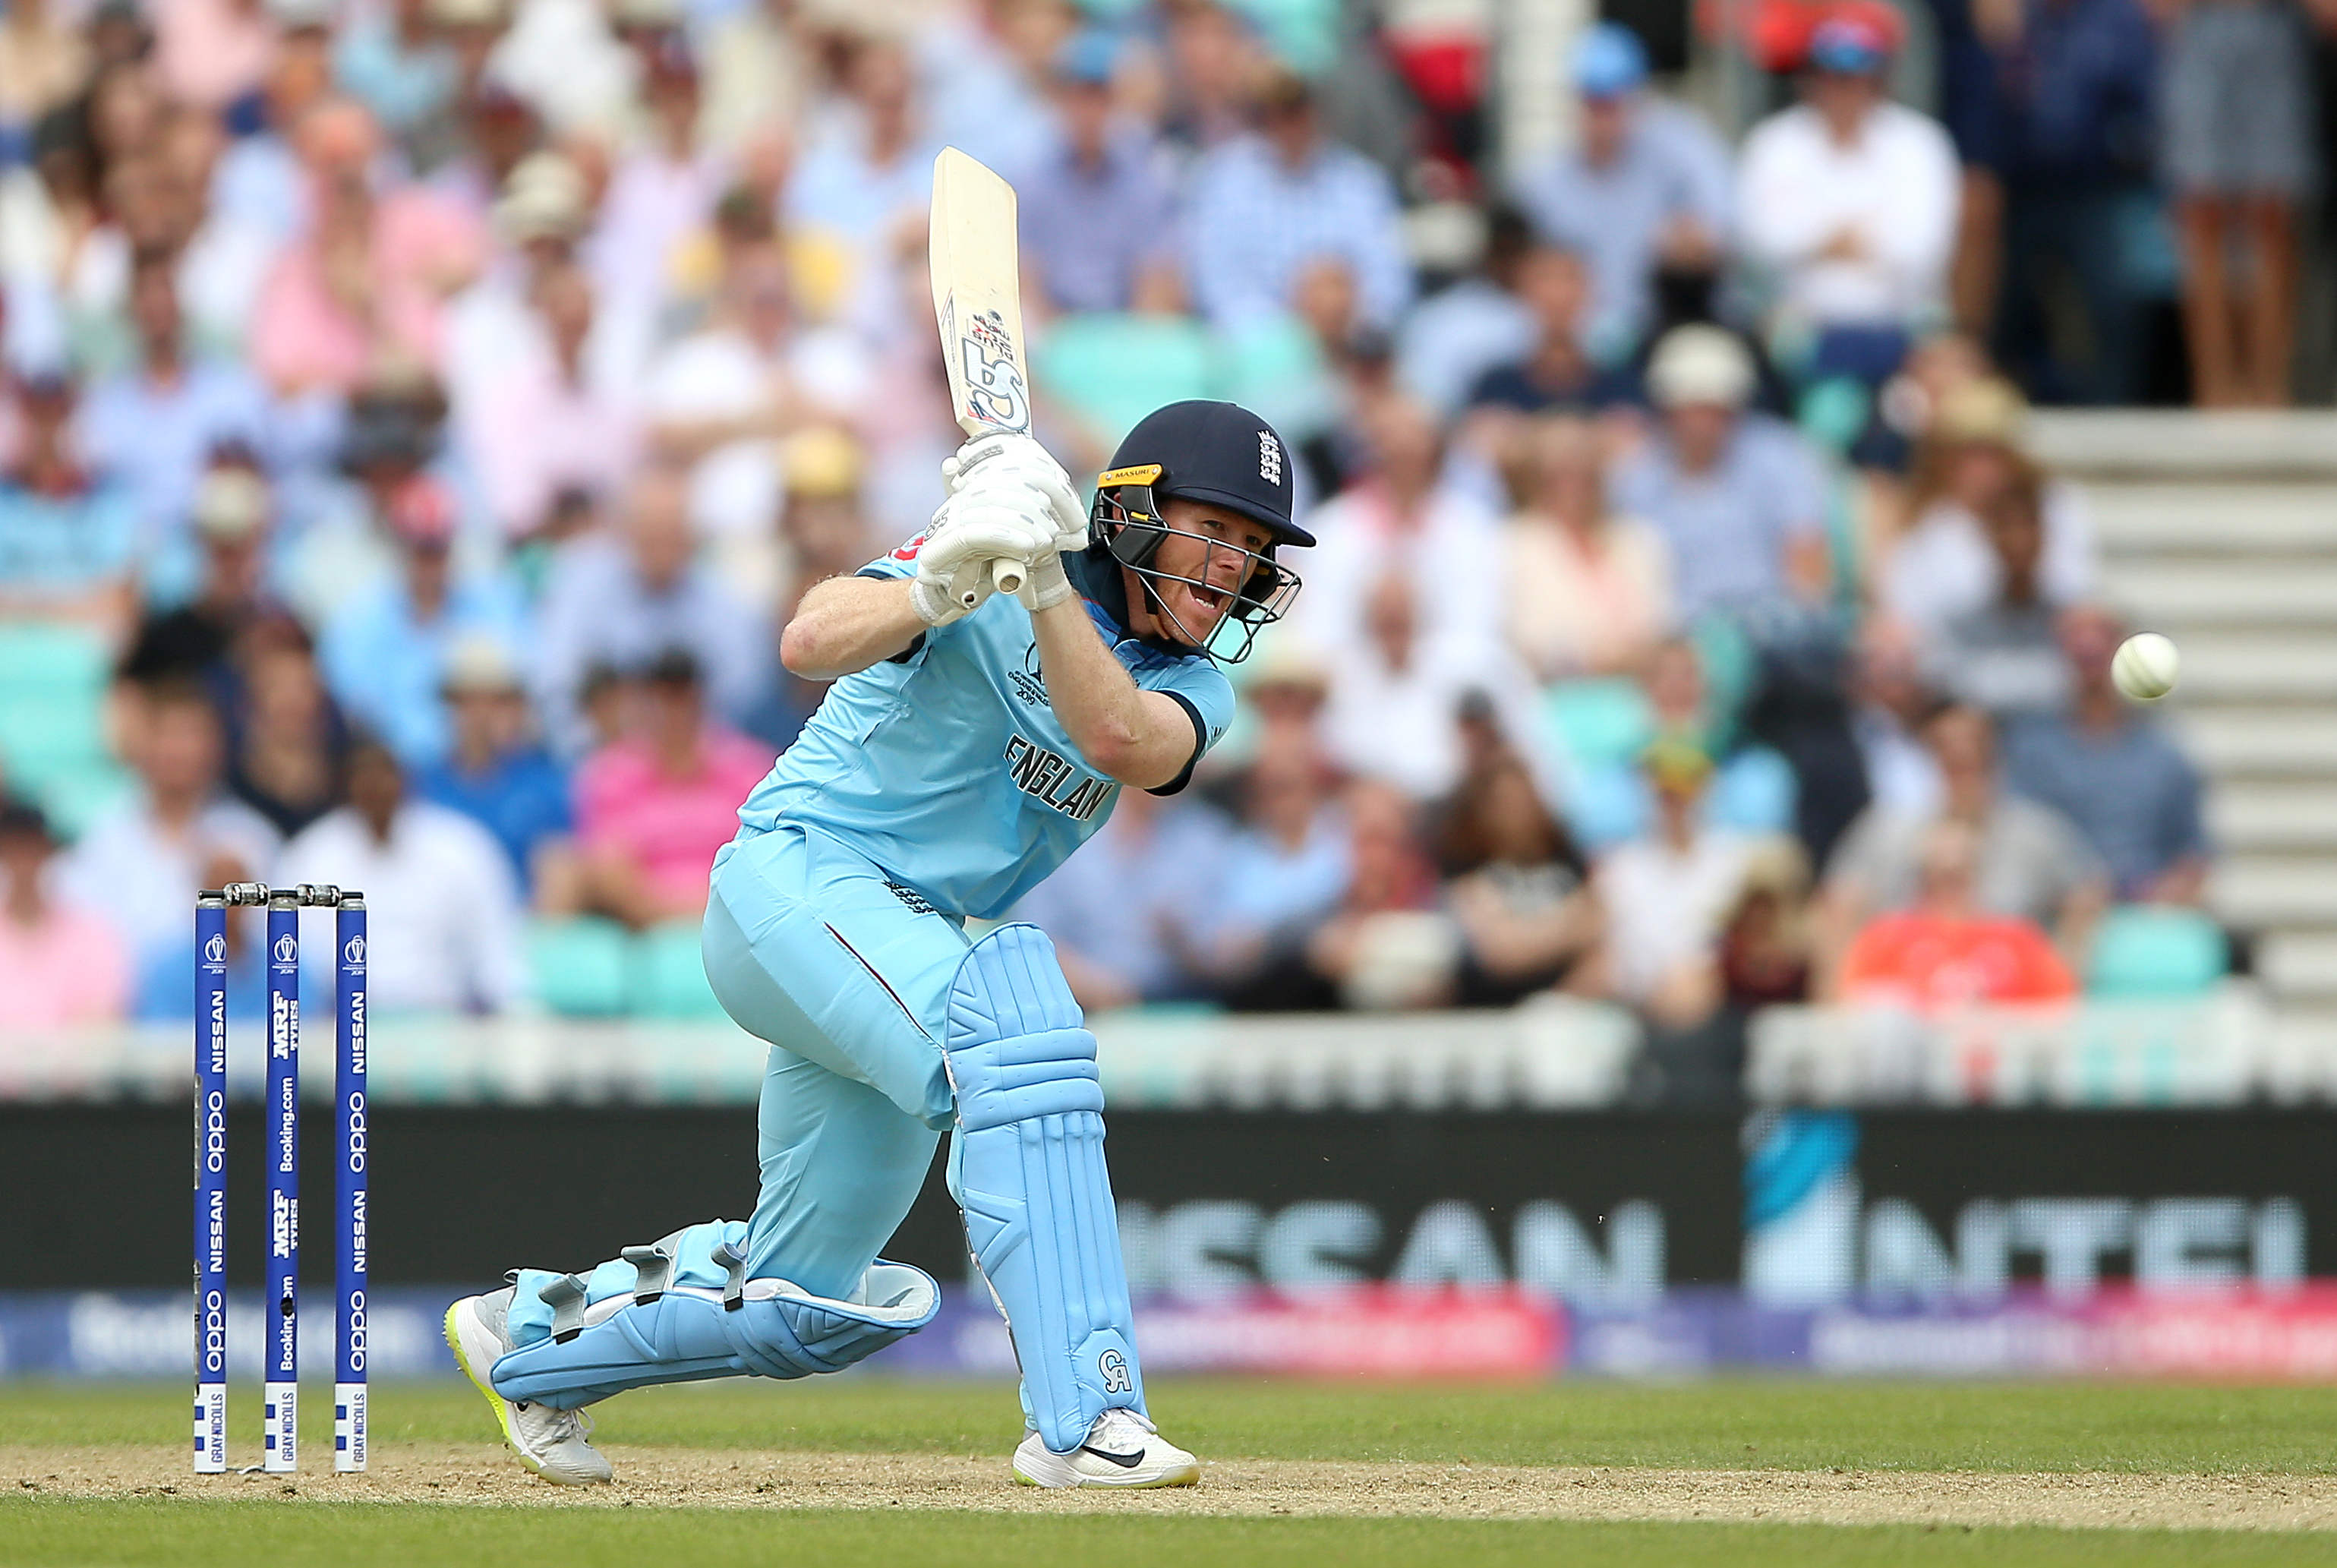 Cricket World Cup: England vs. West Indies Preview and Betting Tips